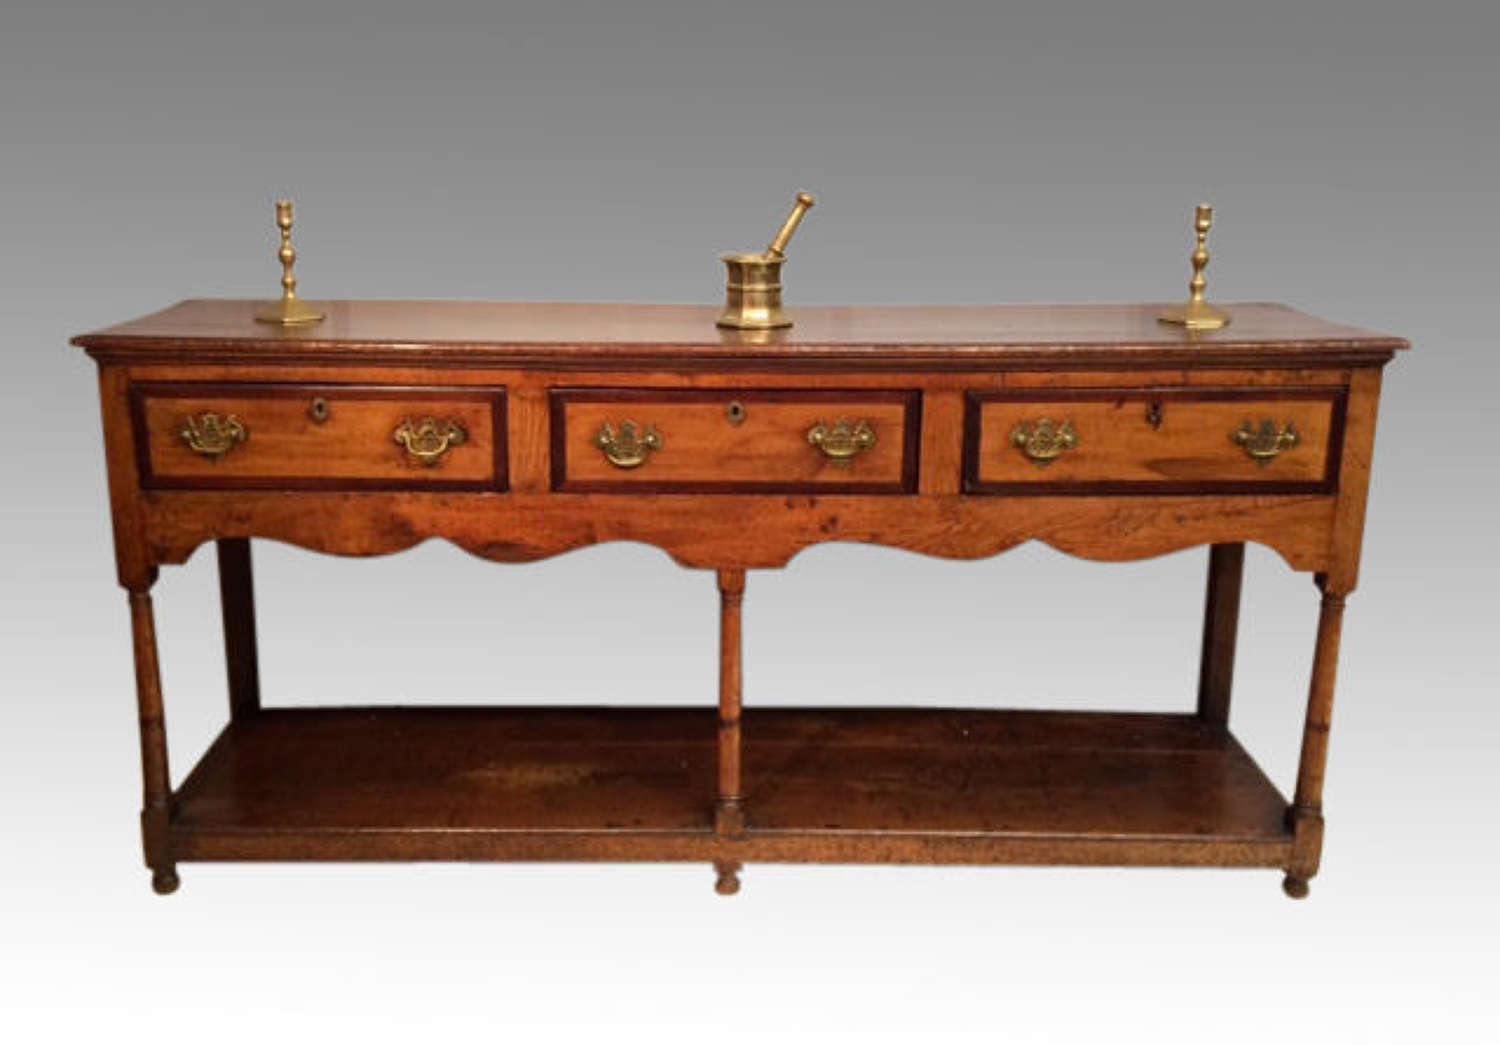 18th century antique elm dresser base.